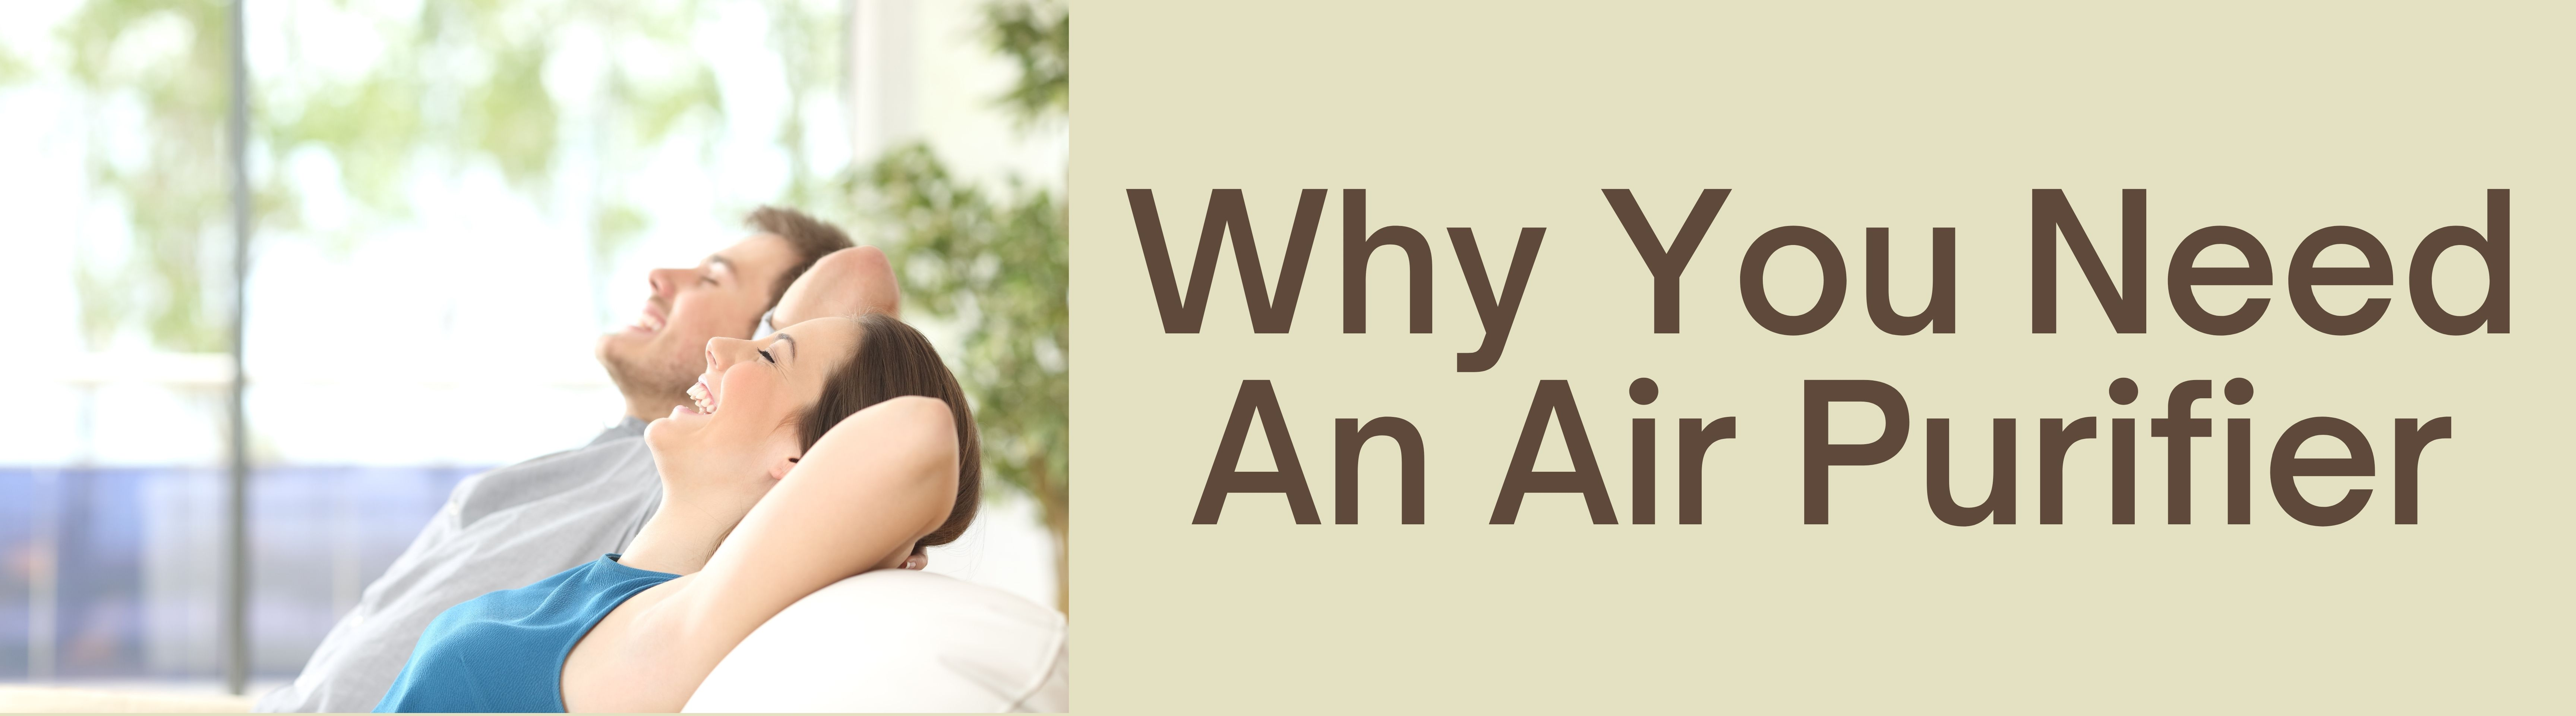 Image for Why You Need To Start Using An Air Purifier